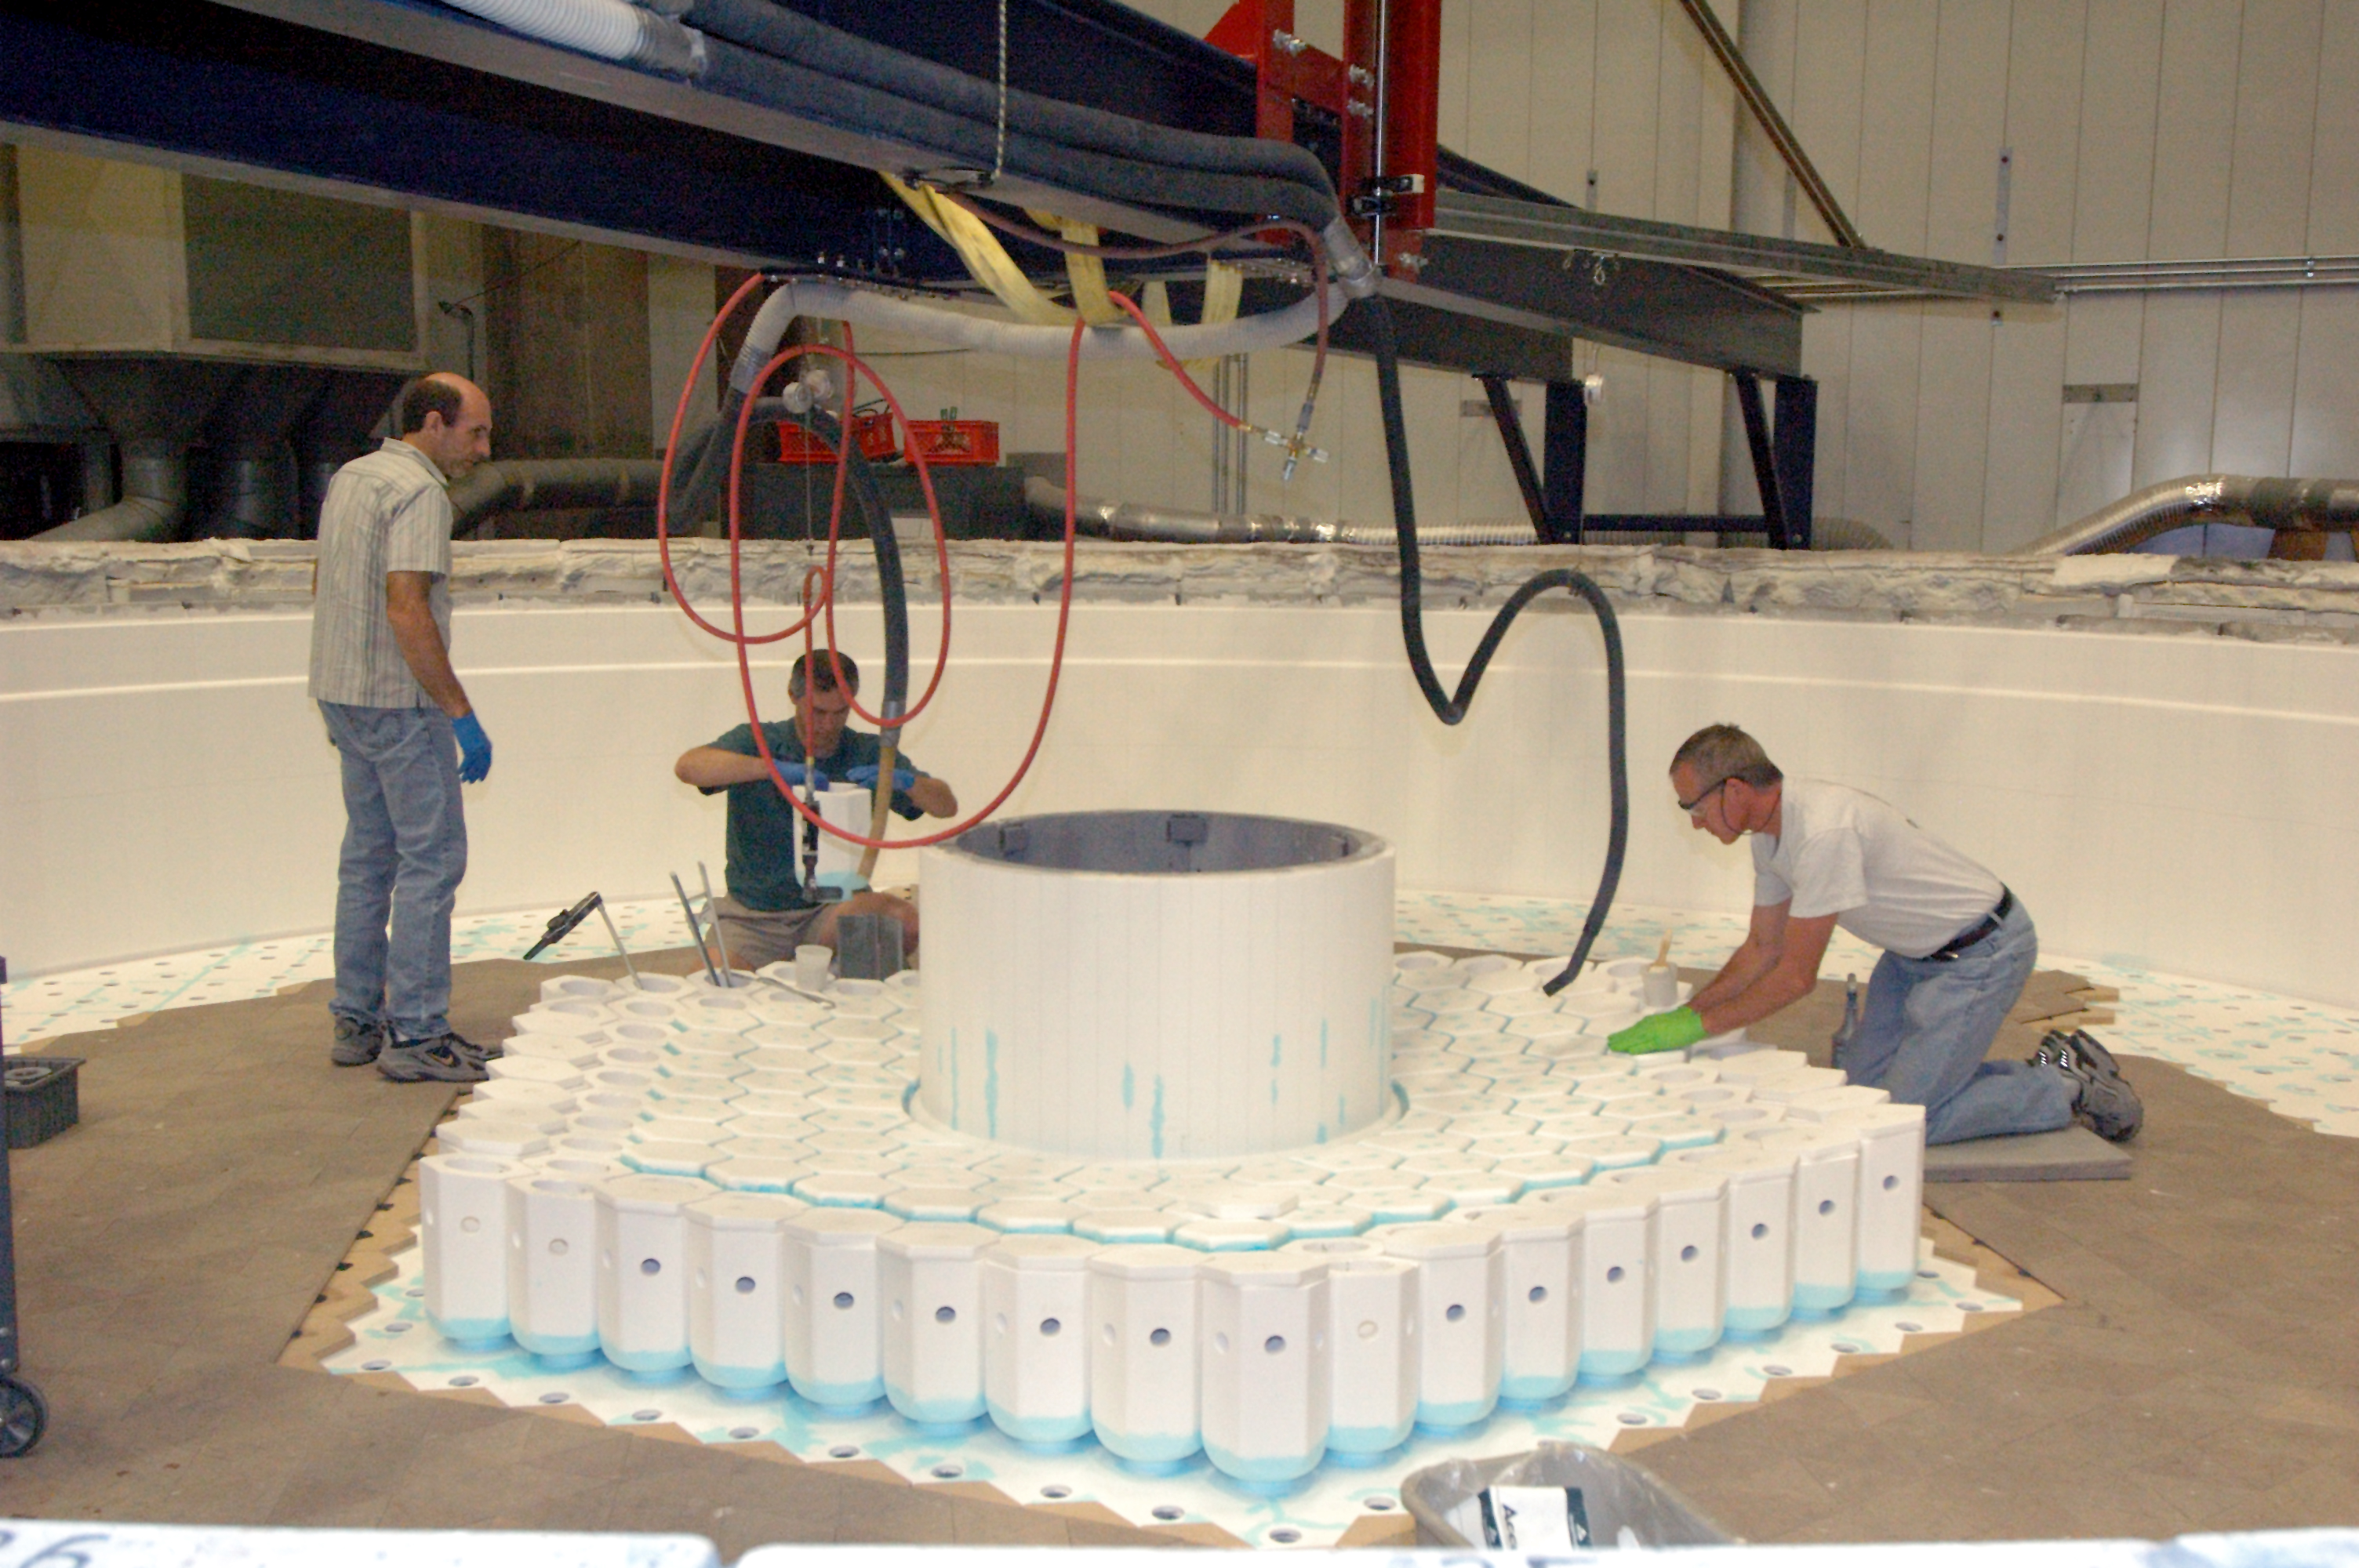 Jim Bracken, Randy Lutz, and Phil Muir (L-R) install cores in the LSST monolithic mirror mold.